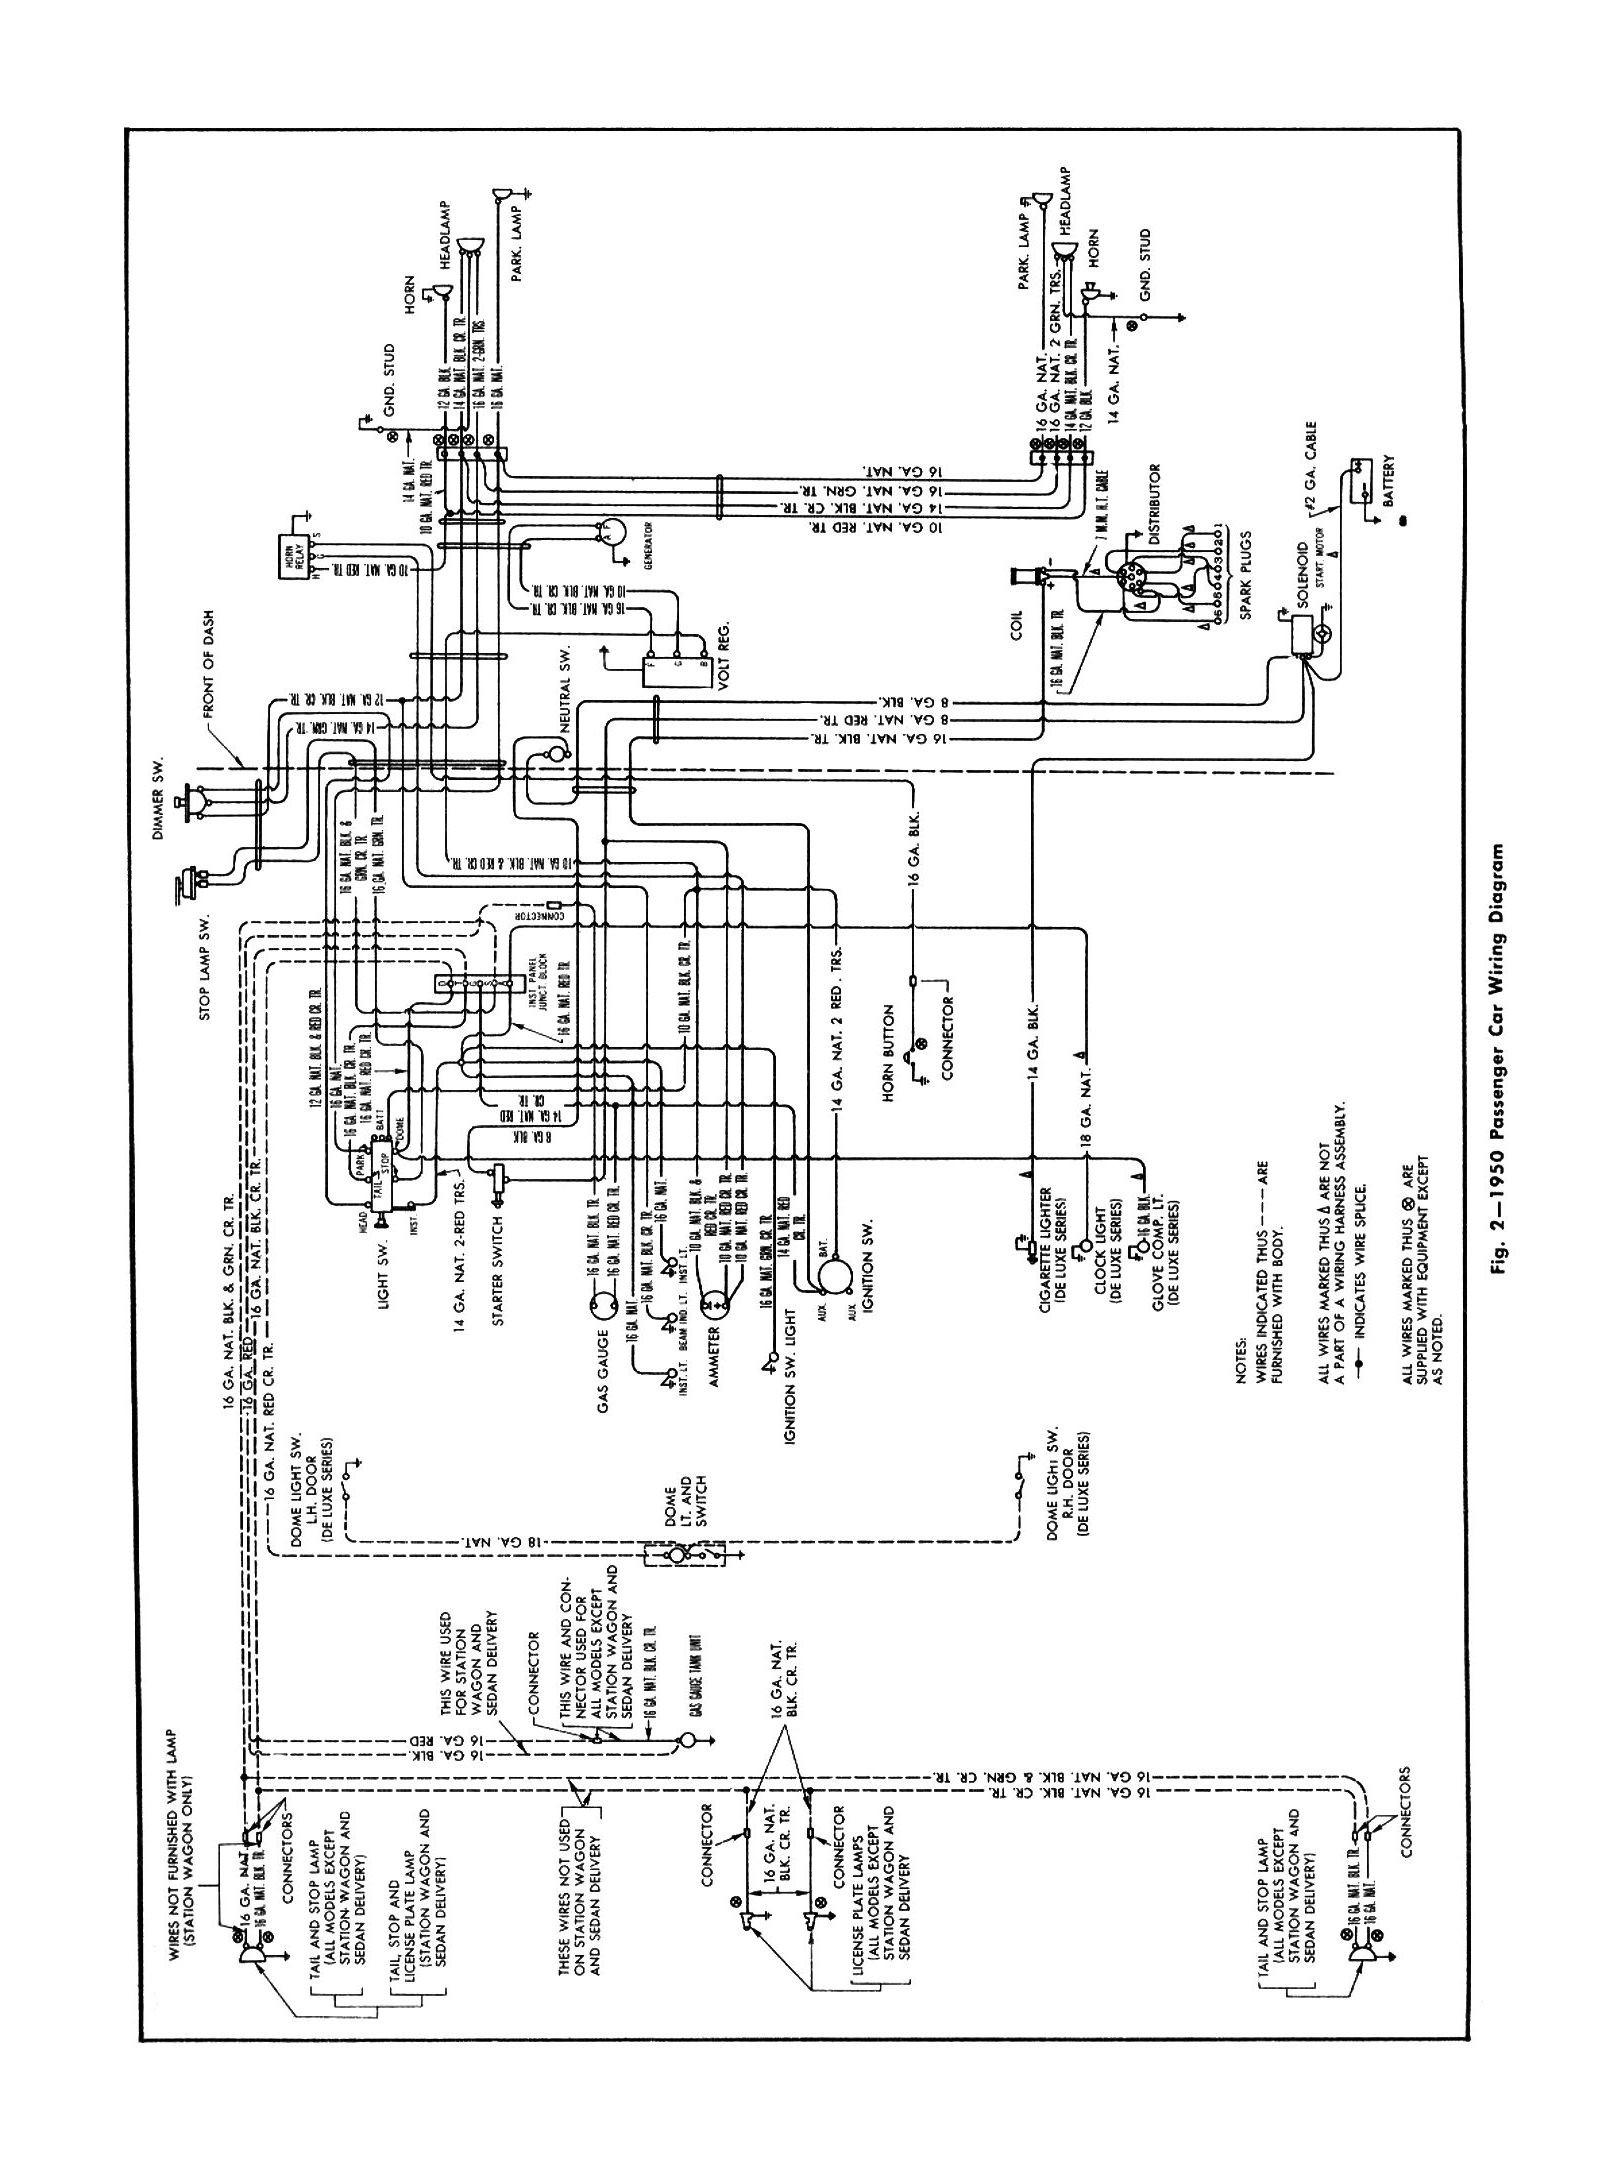 Chevy wiring diagrams 1950 car general wiring cheapraybanclubmaster Image collections